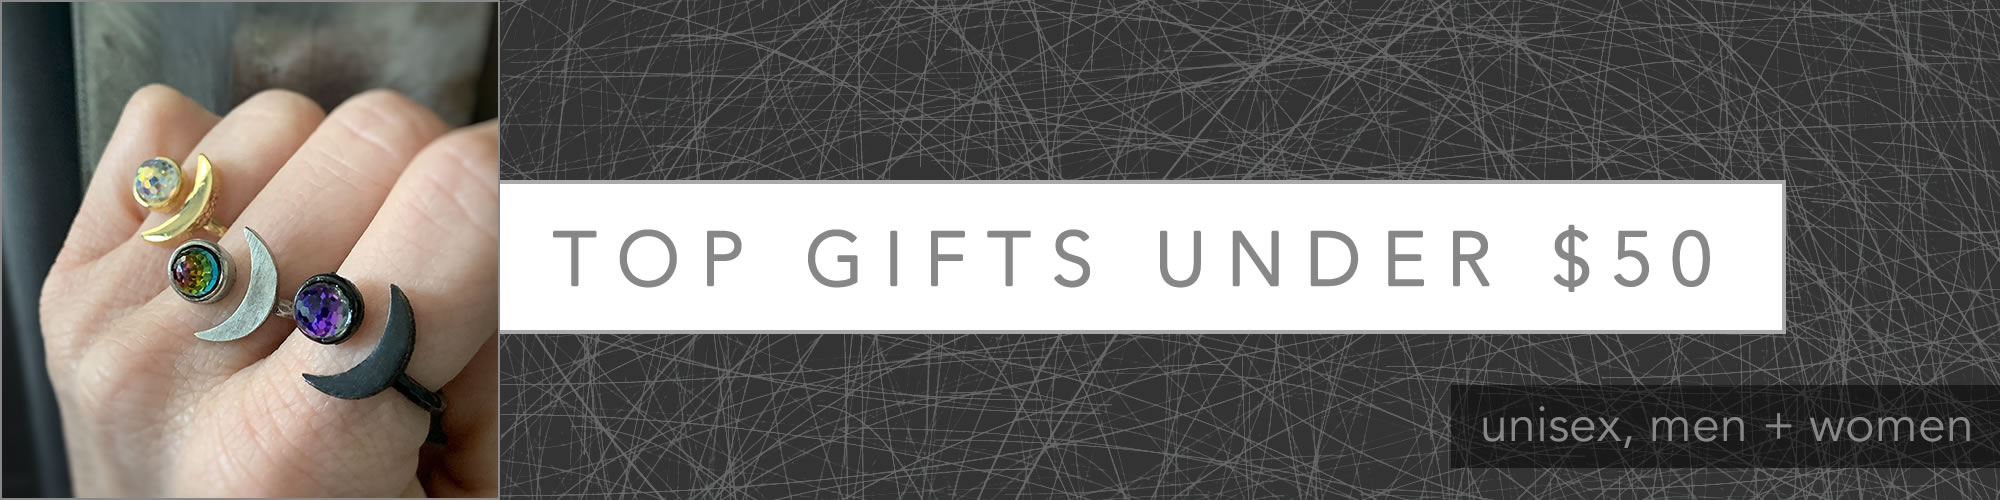 Top Gifts for Under $50